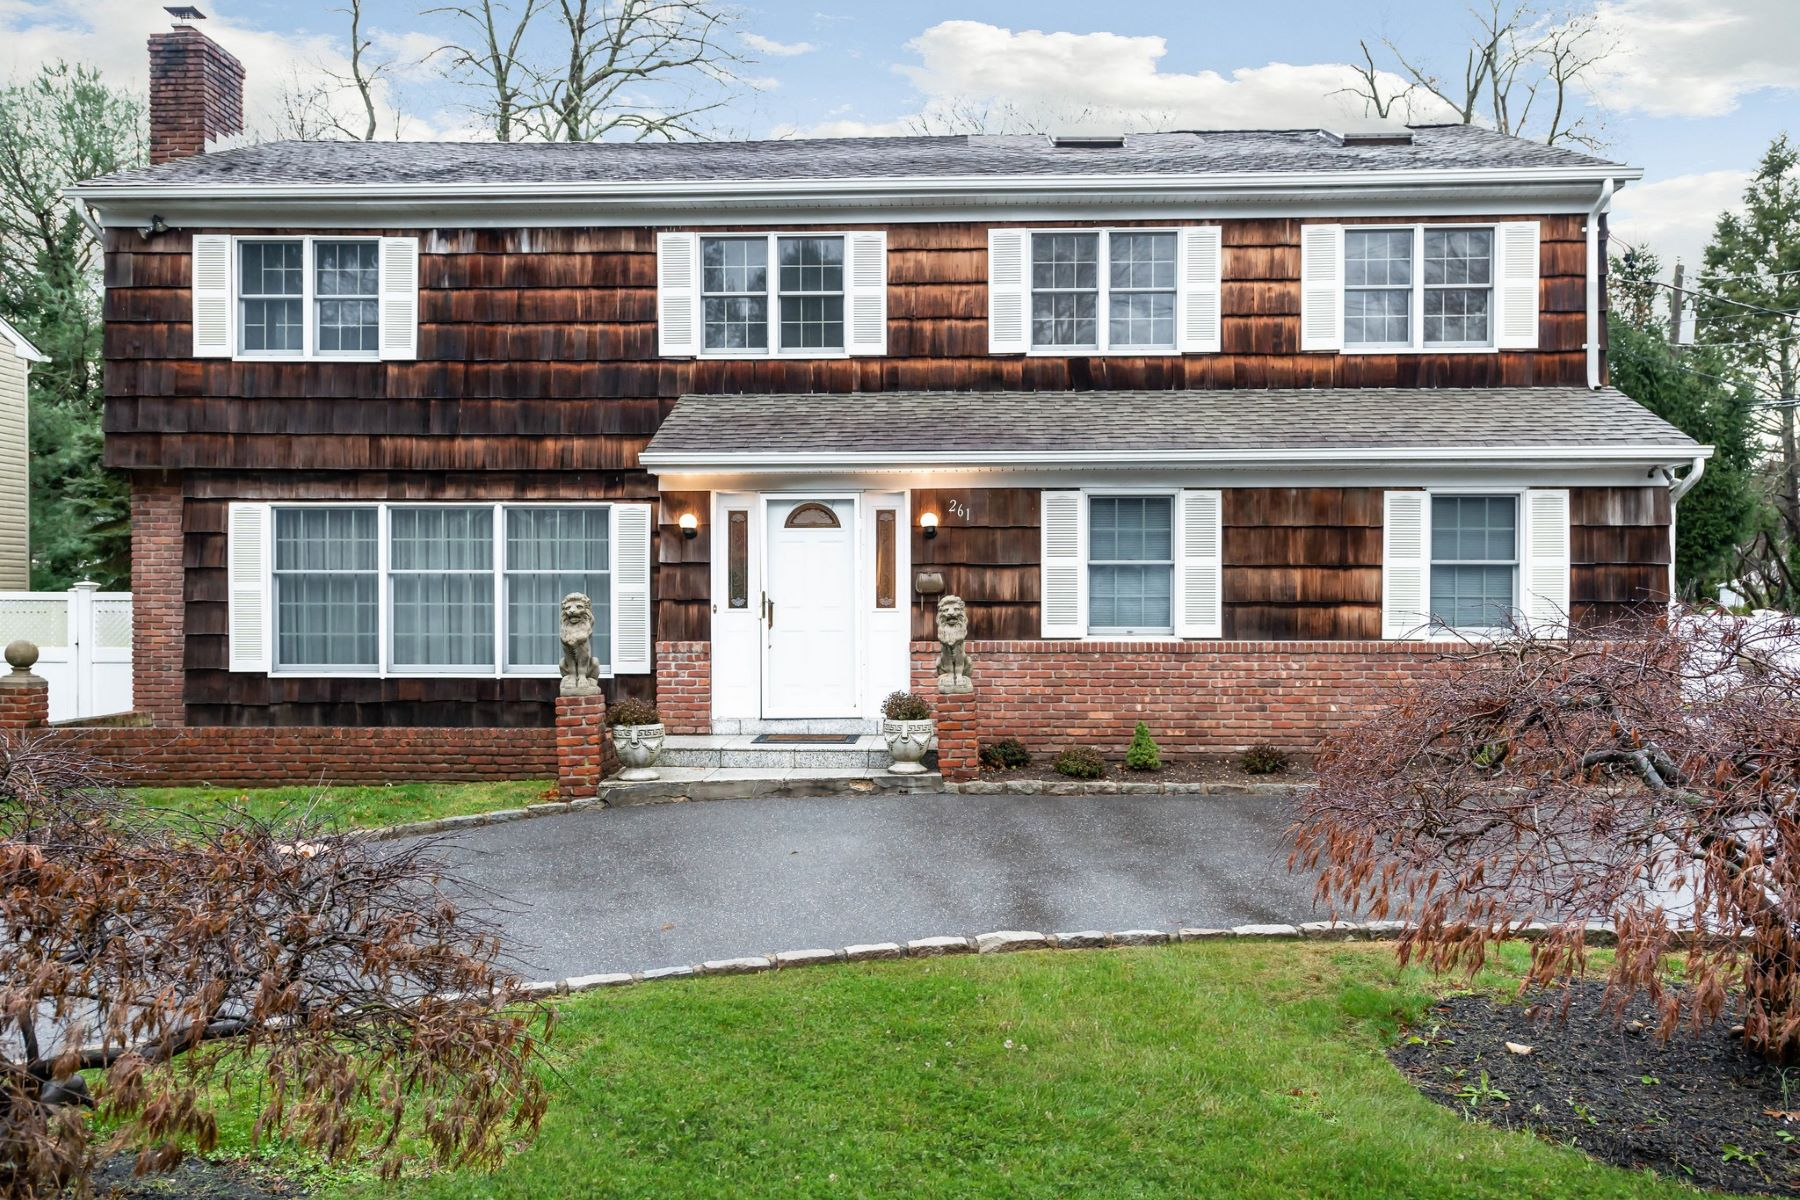 Single Family Homes for Active at Syosset 261 Berry Hill Road Syosset, New York 11791 United States